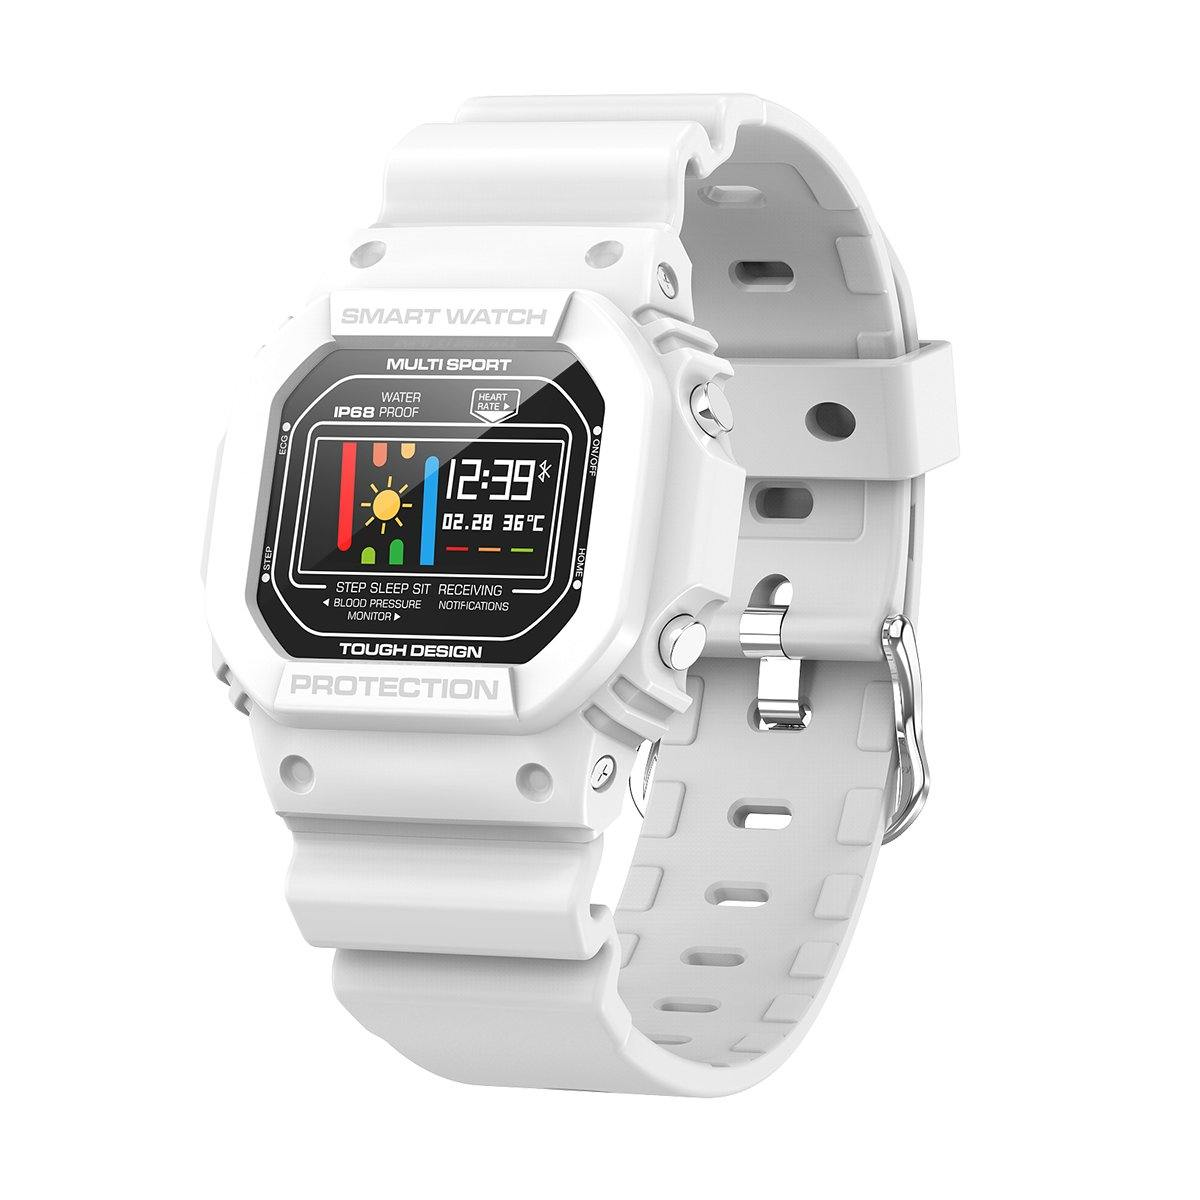 Microwear X12 MULTISPORT TOUCHSCREEN SMARTWATCH - White